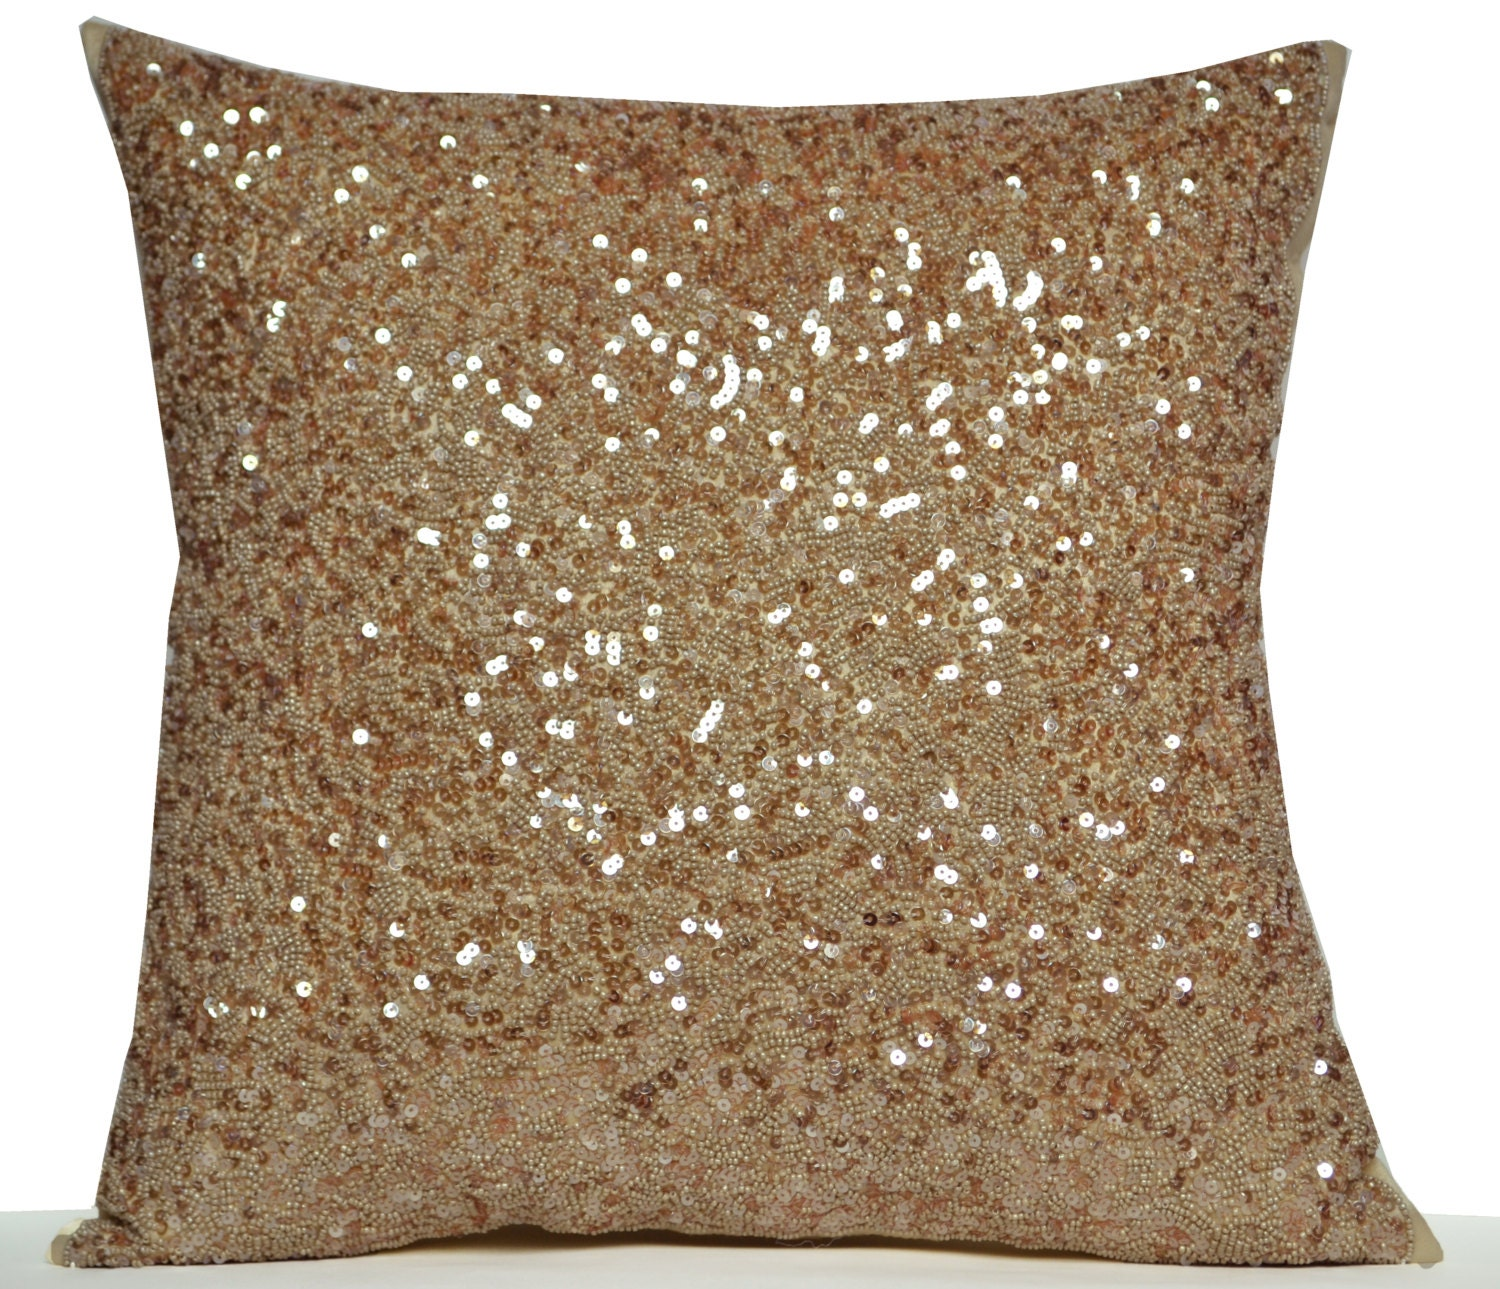 Designer Throw Pillow Cover Beige Silk Luxury Confetti